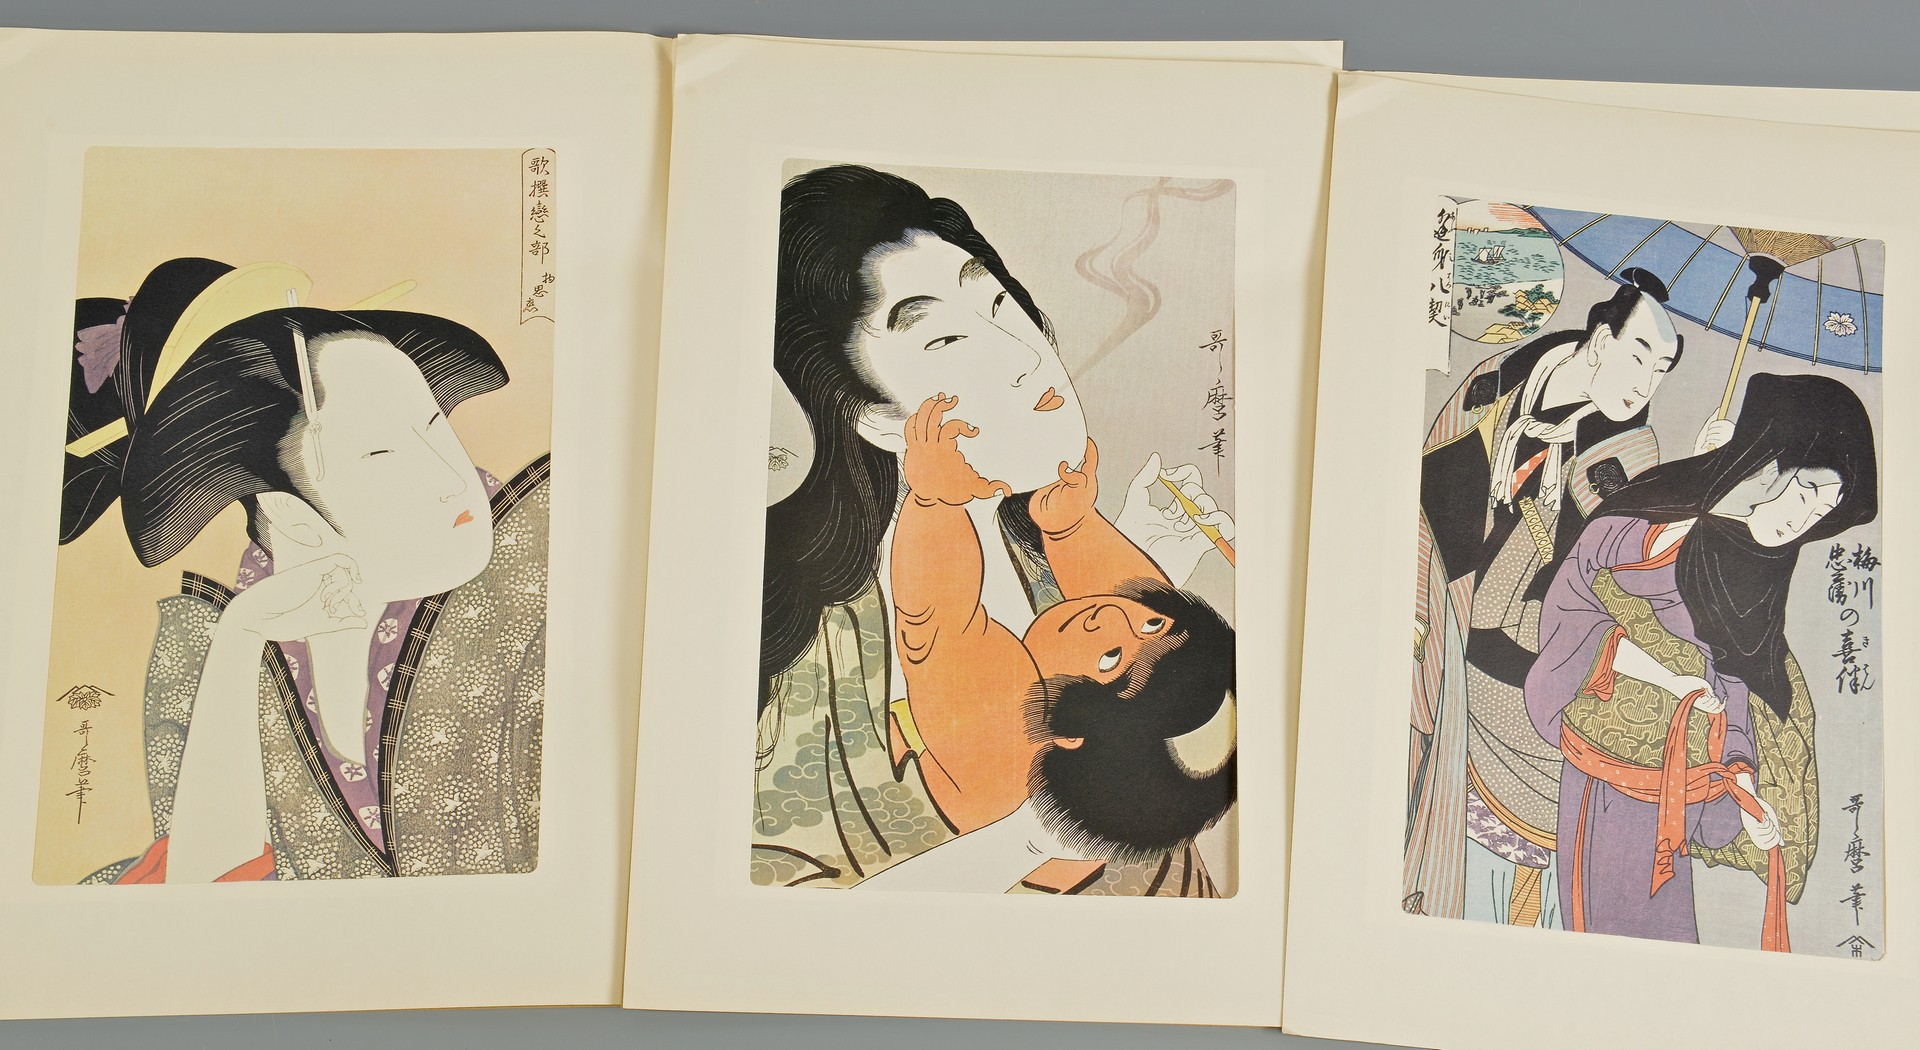 Lot 4010118: Utamaro, Ukiyo-e Hanga 24 Masterpieces & Others